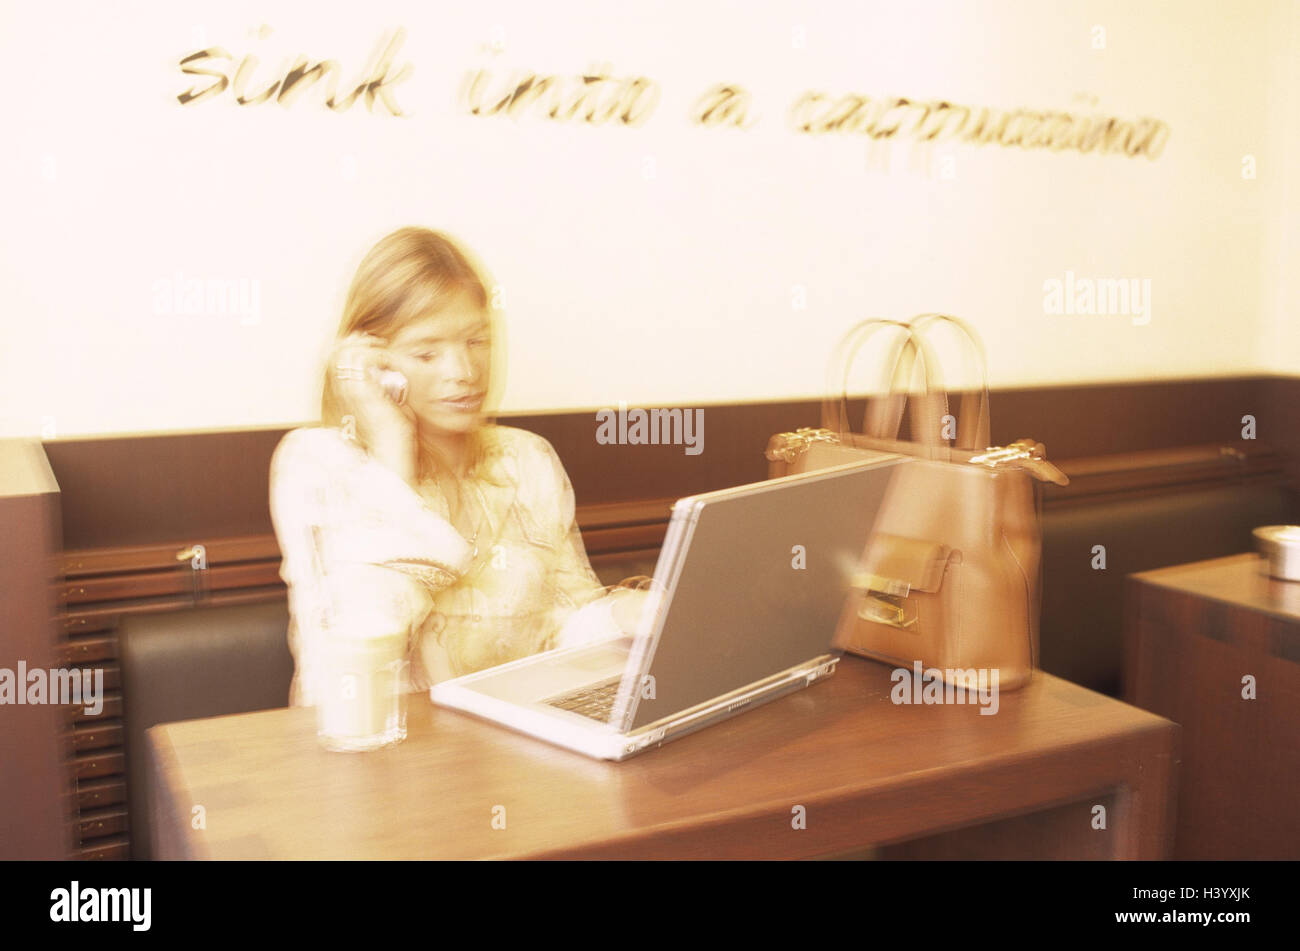 Woman, call up young, cafe, notebook computer, mobile phone, blur, manipulated, bar, standing cafe, inside, work, Stock Photo